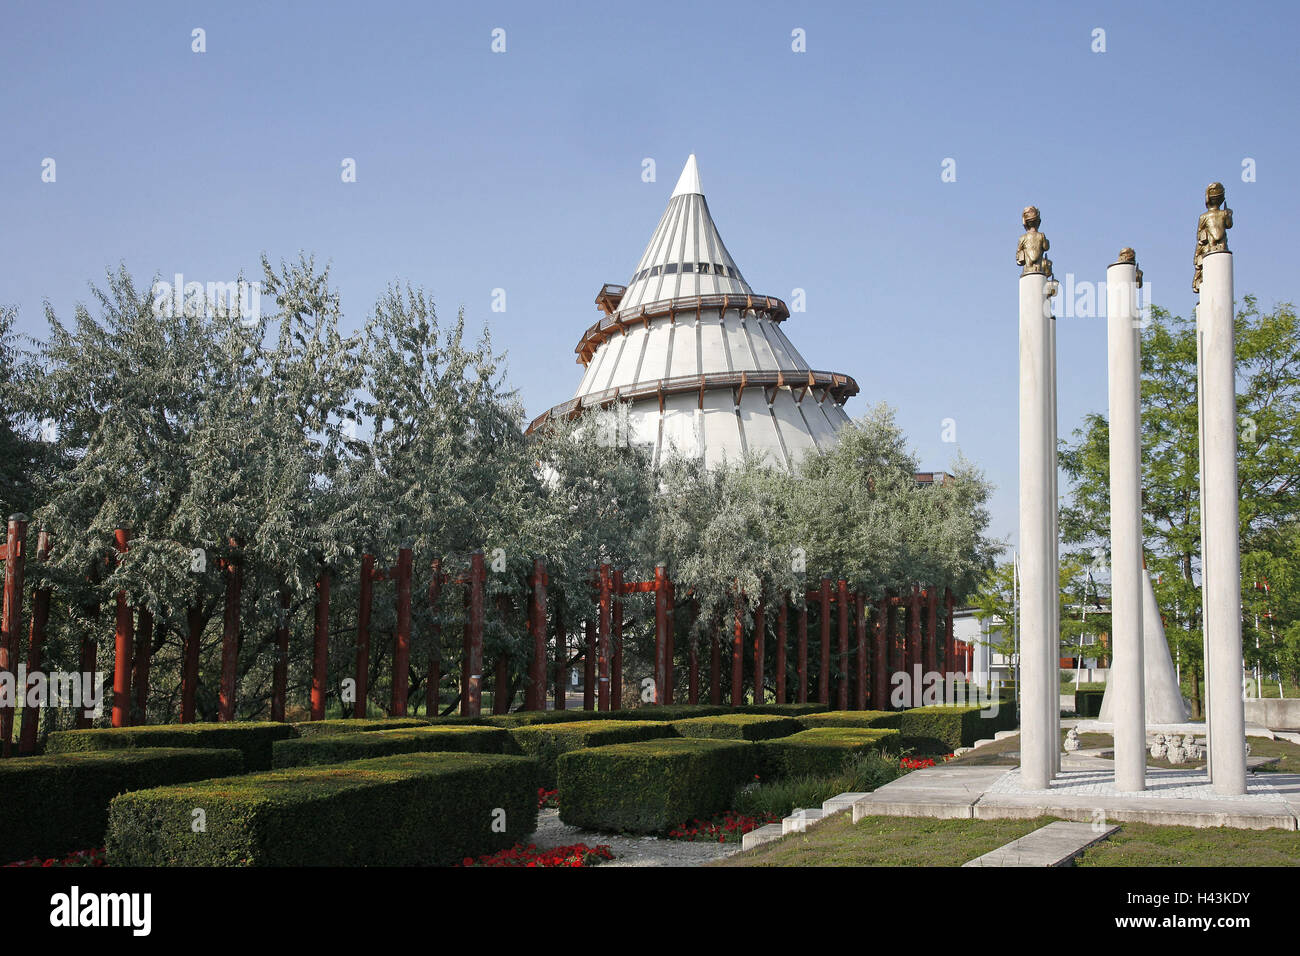 Germany, Saxony-Anhalt, Magdeburg, millennium tower, outside view, town, Tessenowstrasse, Elbauenpark, place of - Stock Image